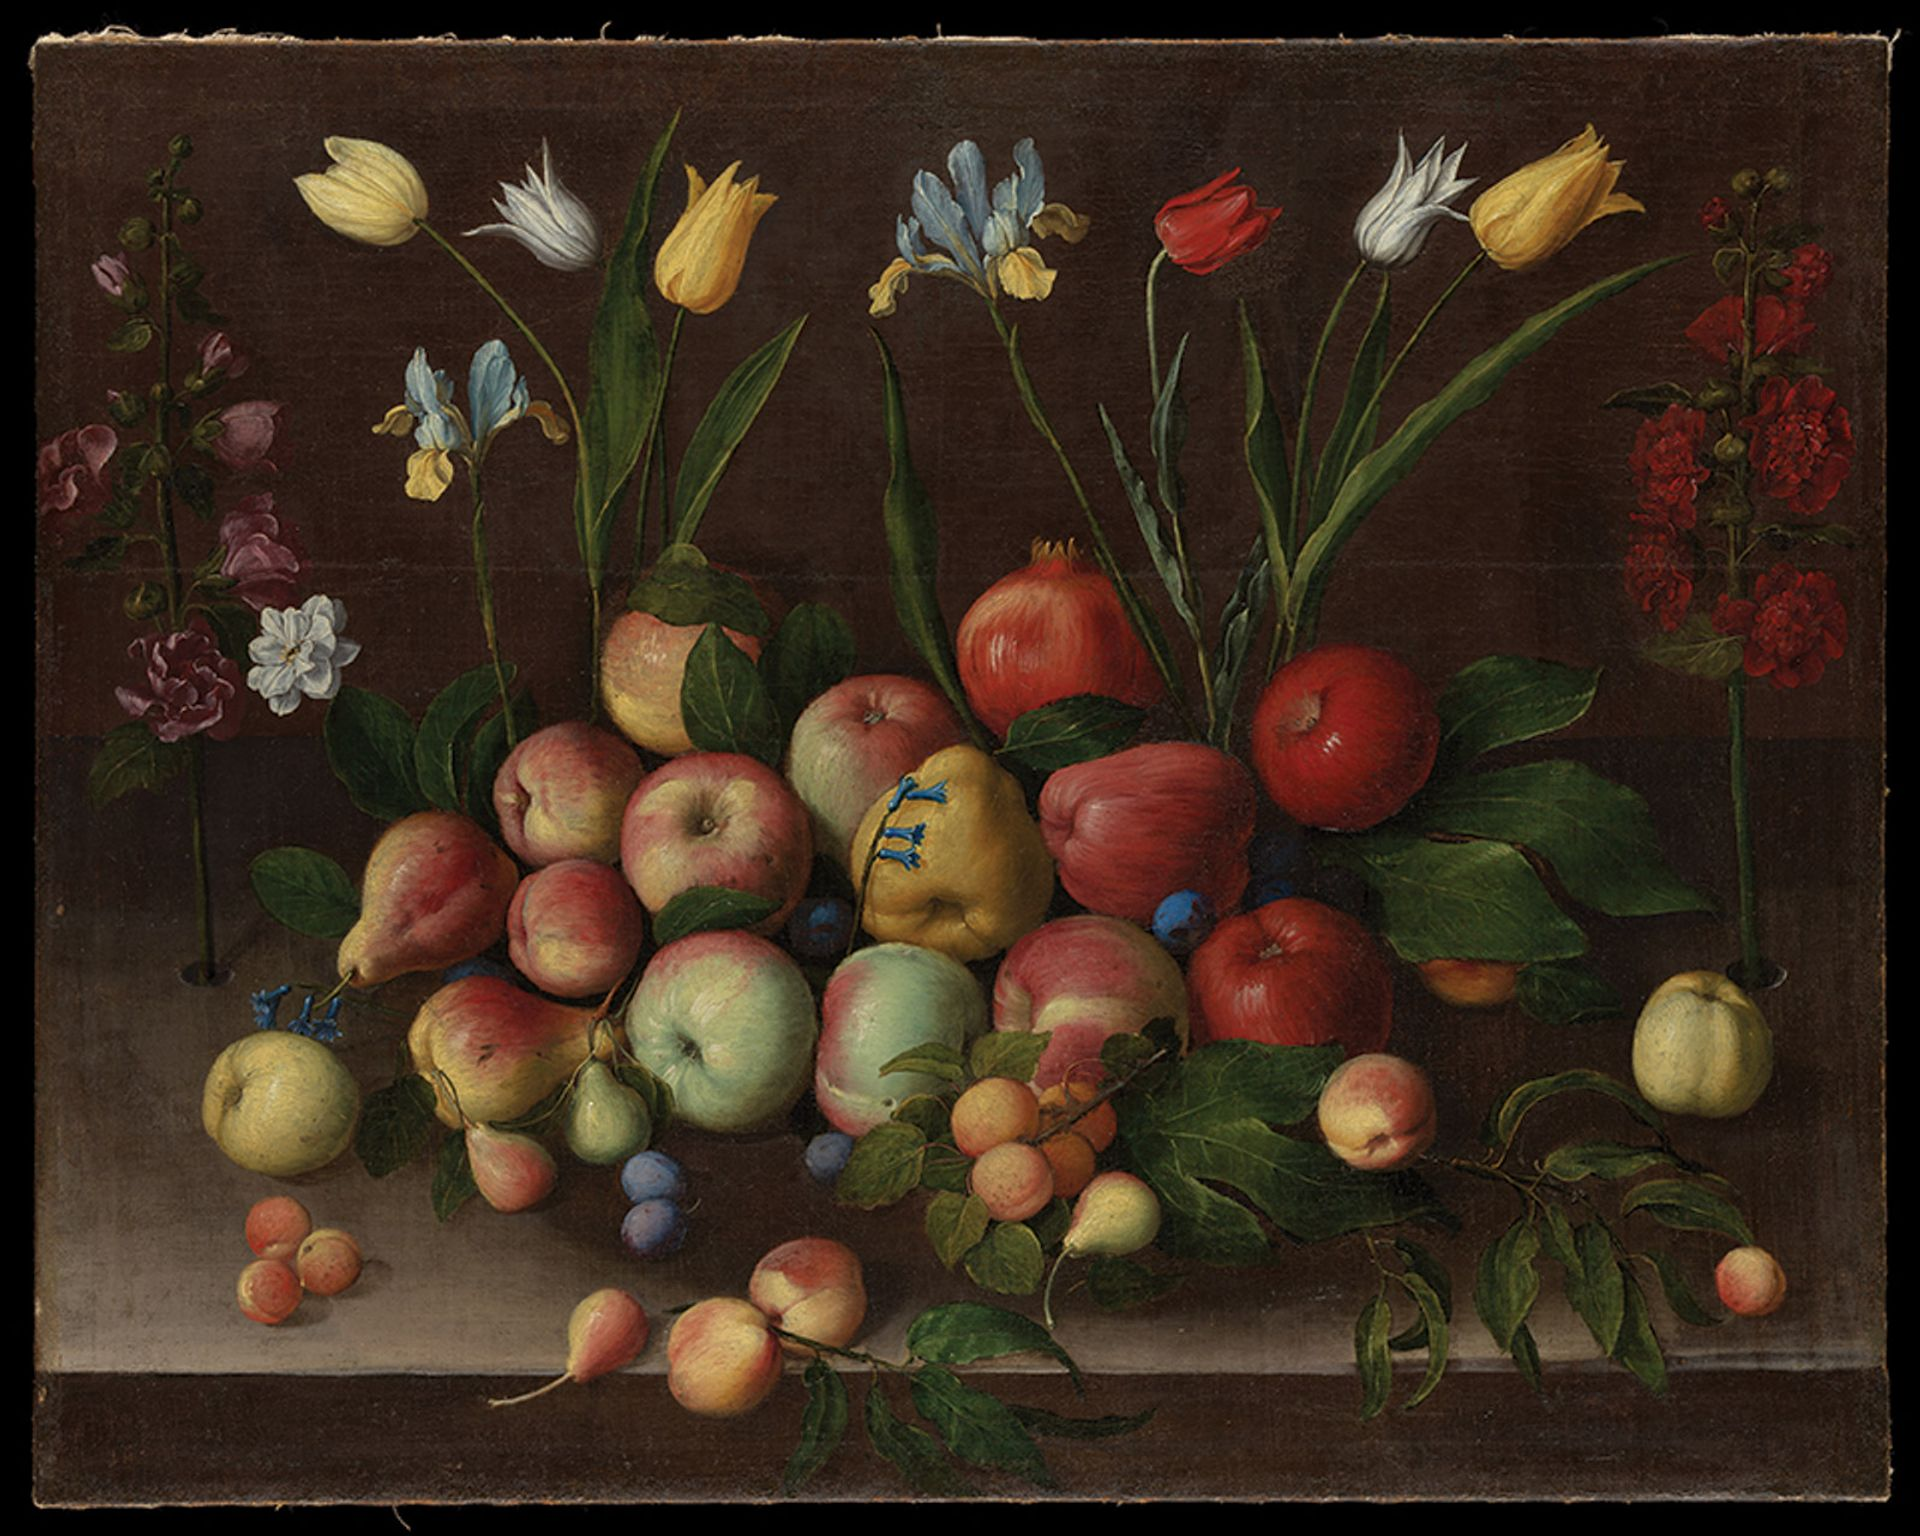 Orsolo Maddalena Caccia's Fruit and Flowers (around 1630) courtesy of the Metropolitan Museum of Art